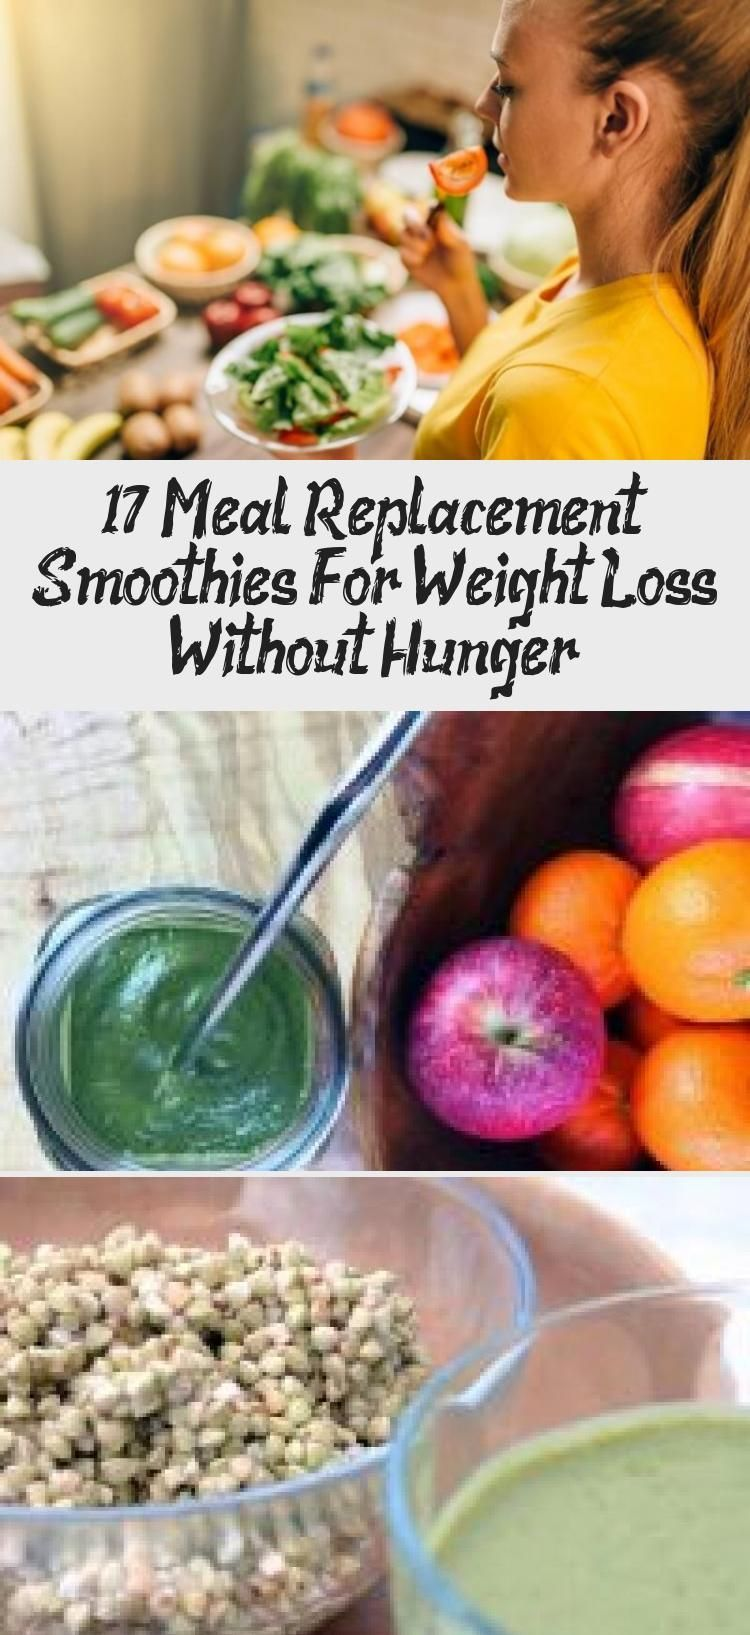 shake to lose weight peanut butter These meal replacement smoothies are all calorie counted and the ingredients are chosen for weight loss And best of all these smoothies...